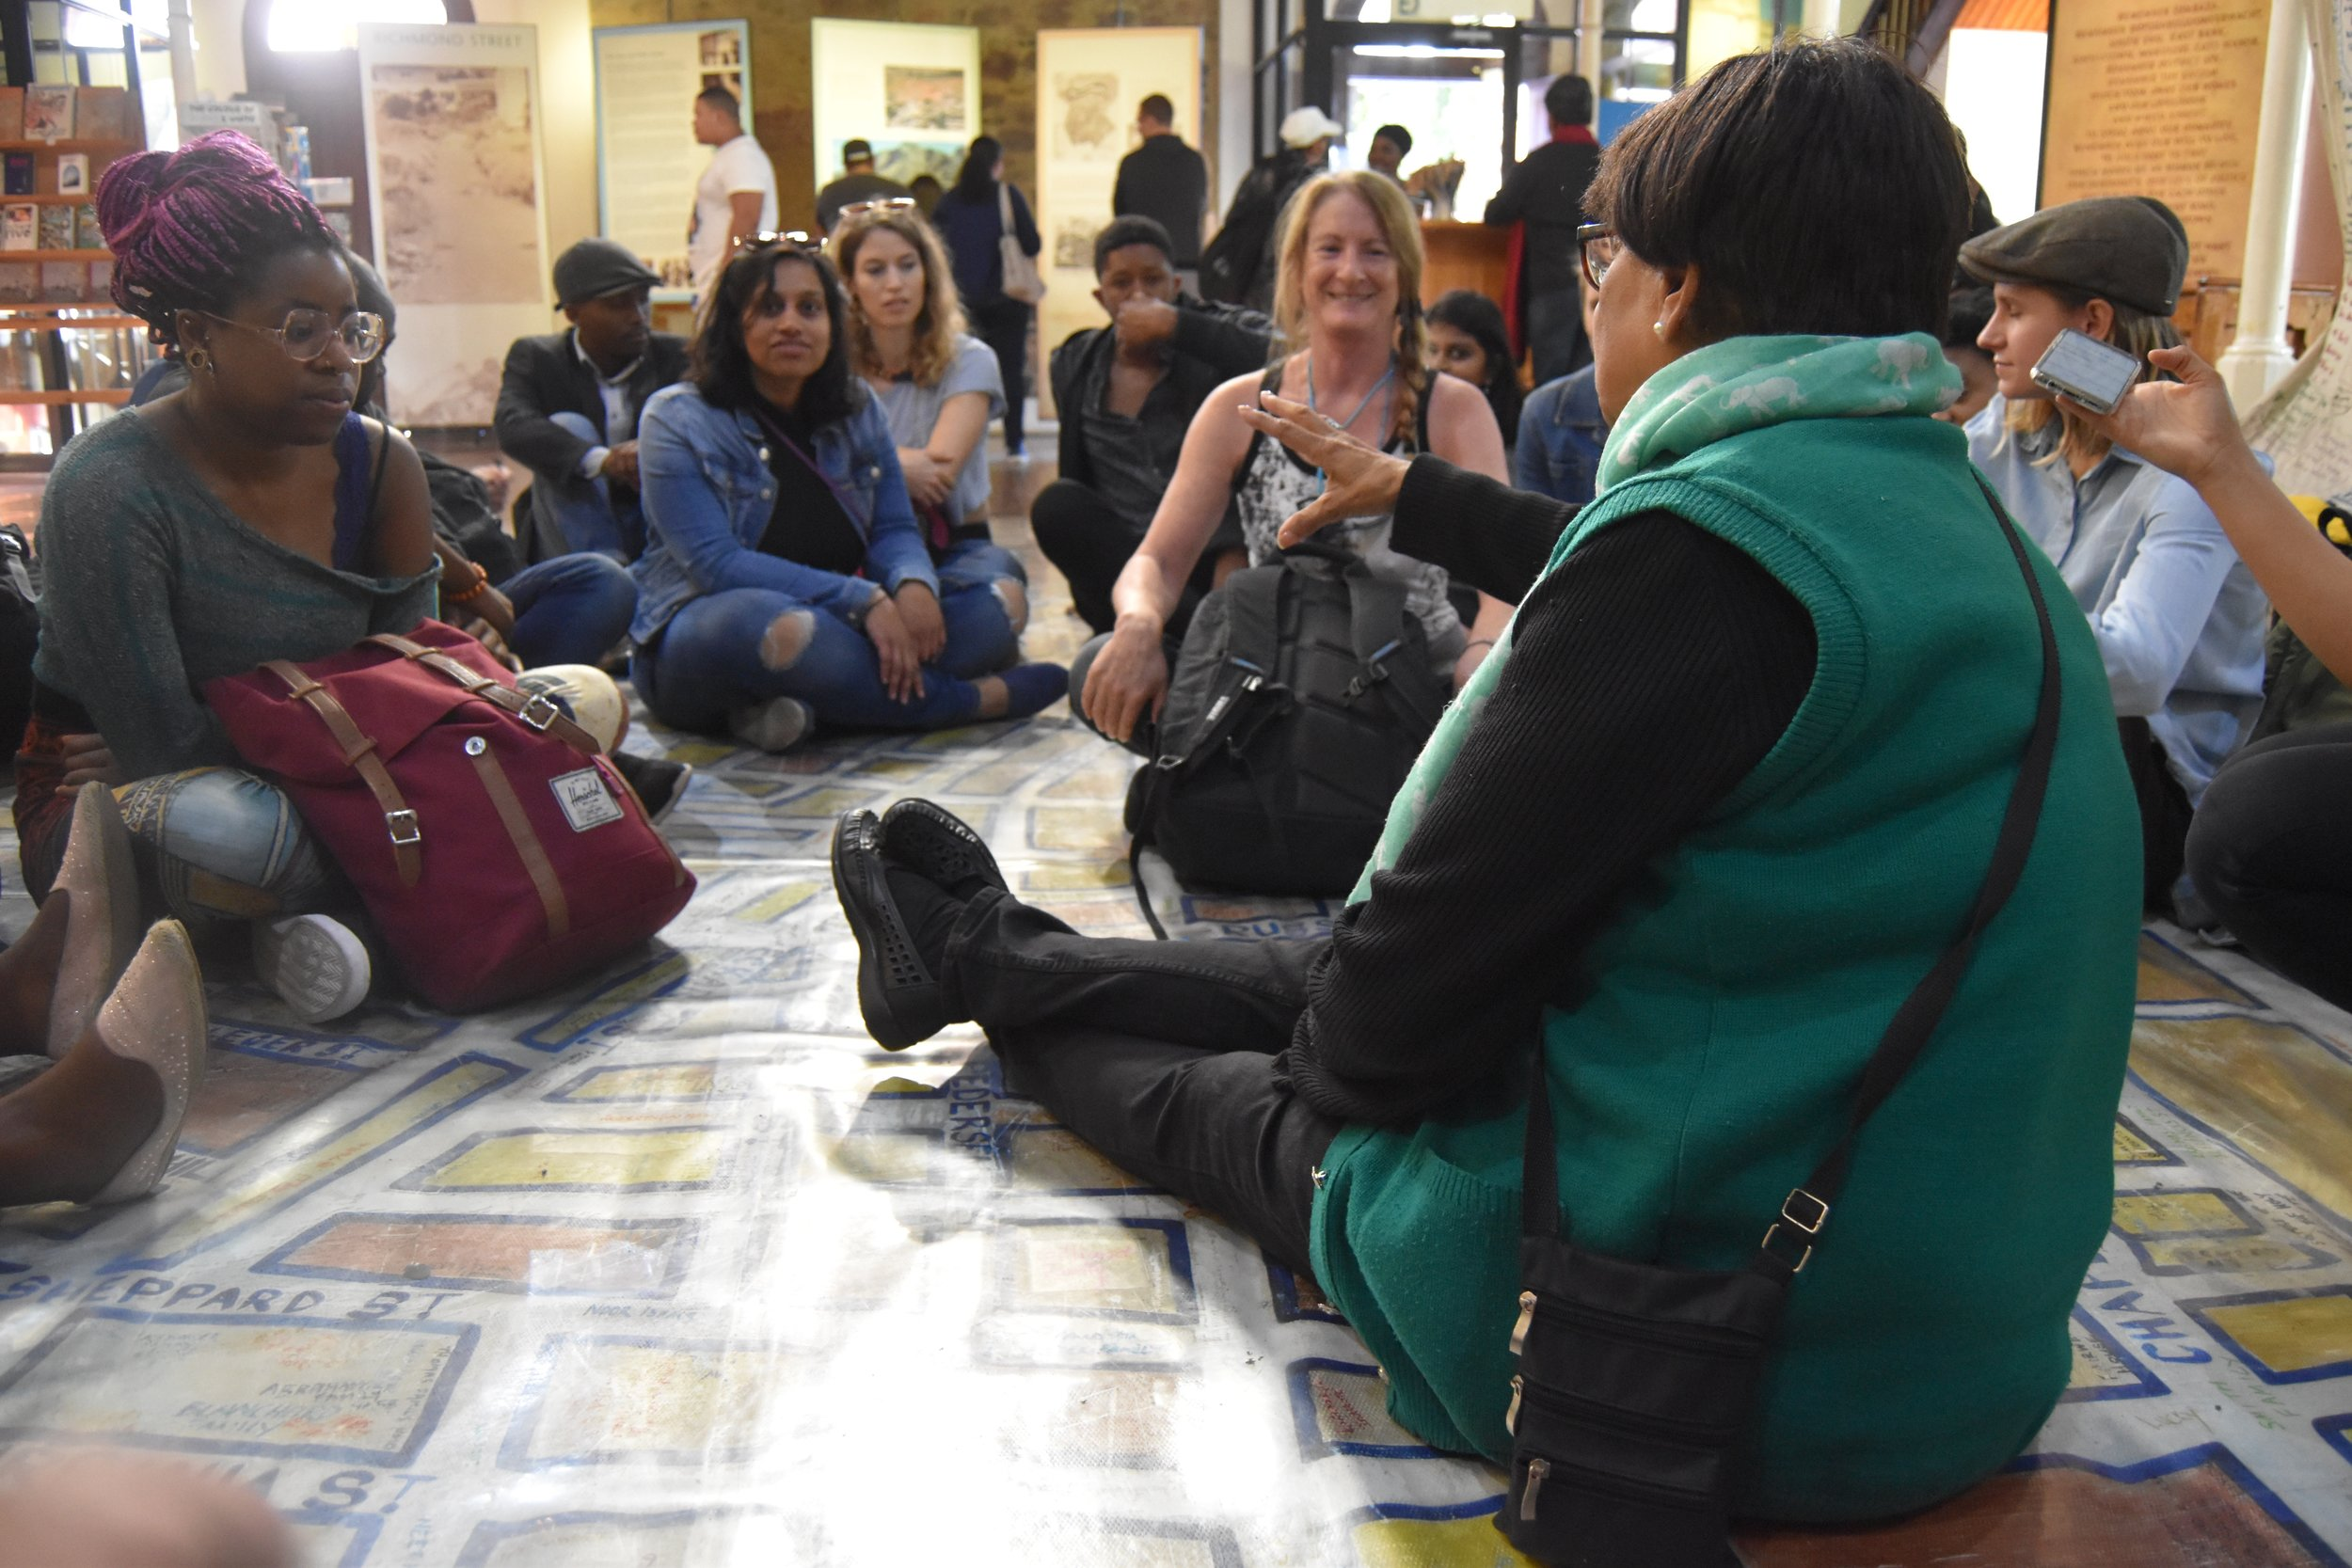 Aunty Ruth and the Cape Town fellows sit on the memory map of the once vibrant and diverse community of District Six that was disrupted by apartheid.